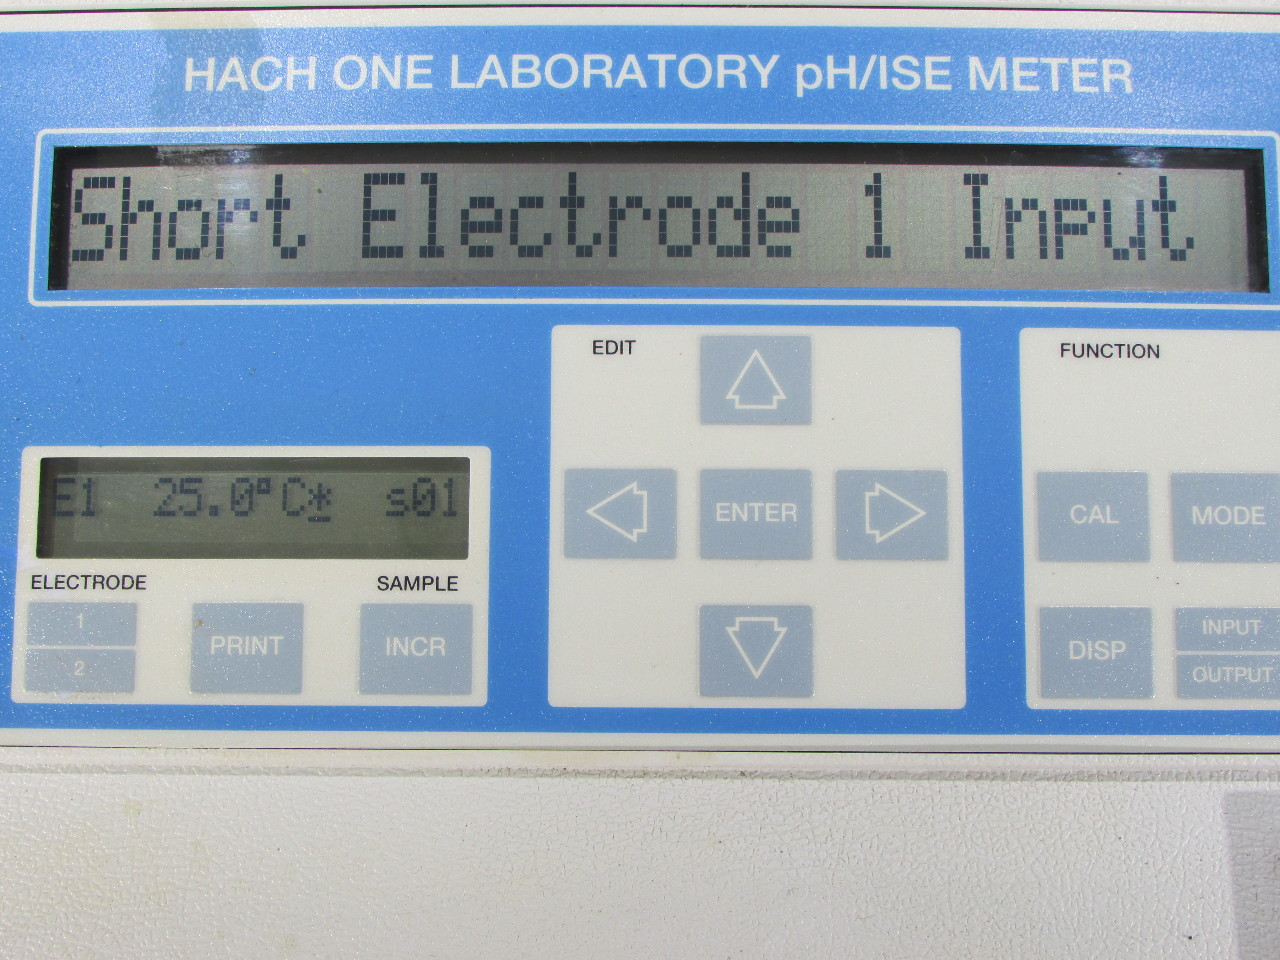 Hach Ph Meter : Hach laboratory ph ise meter premier equipment